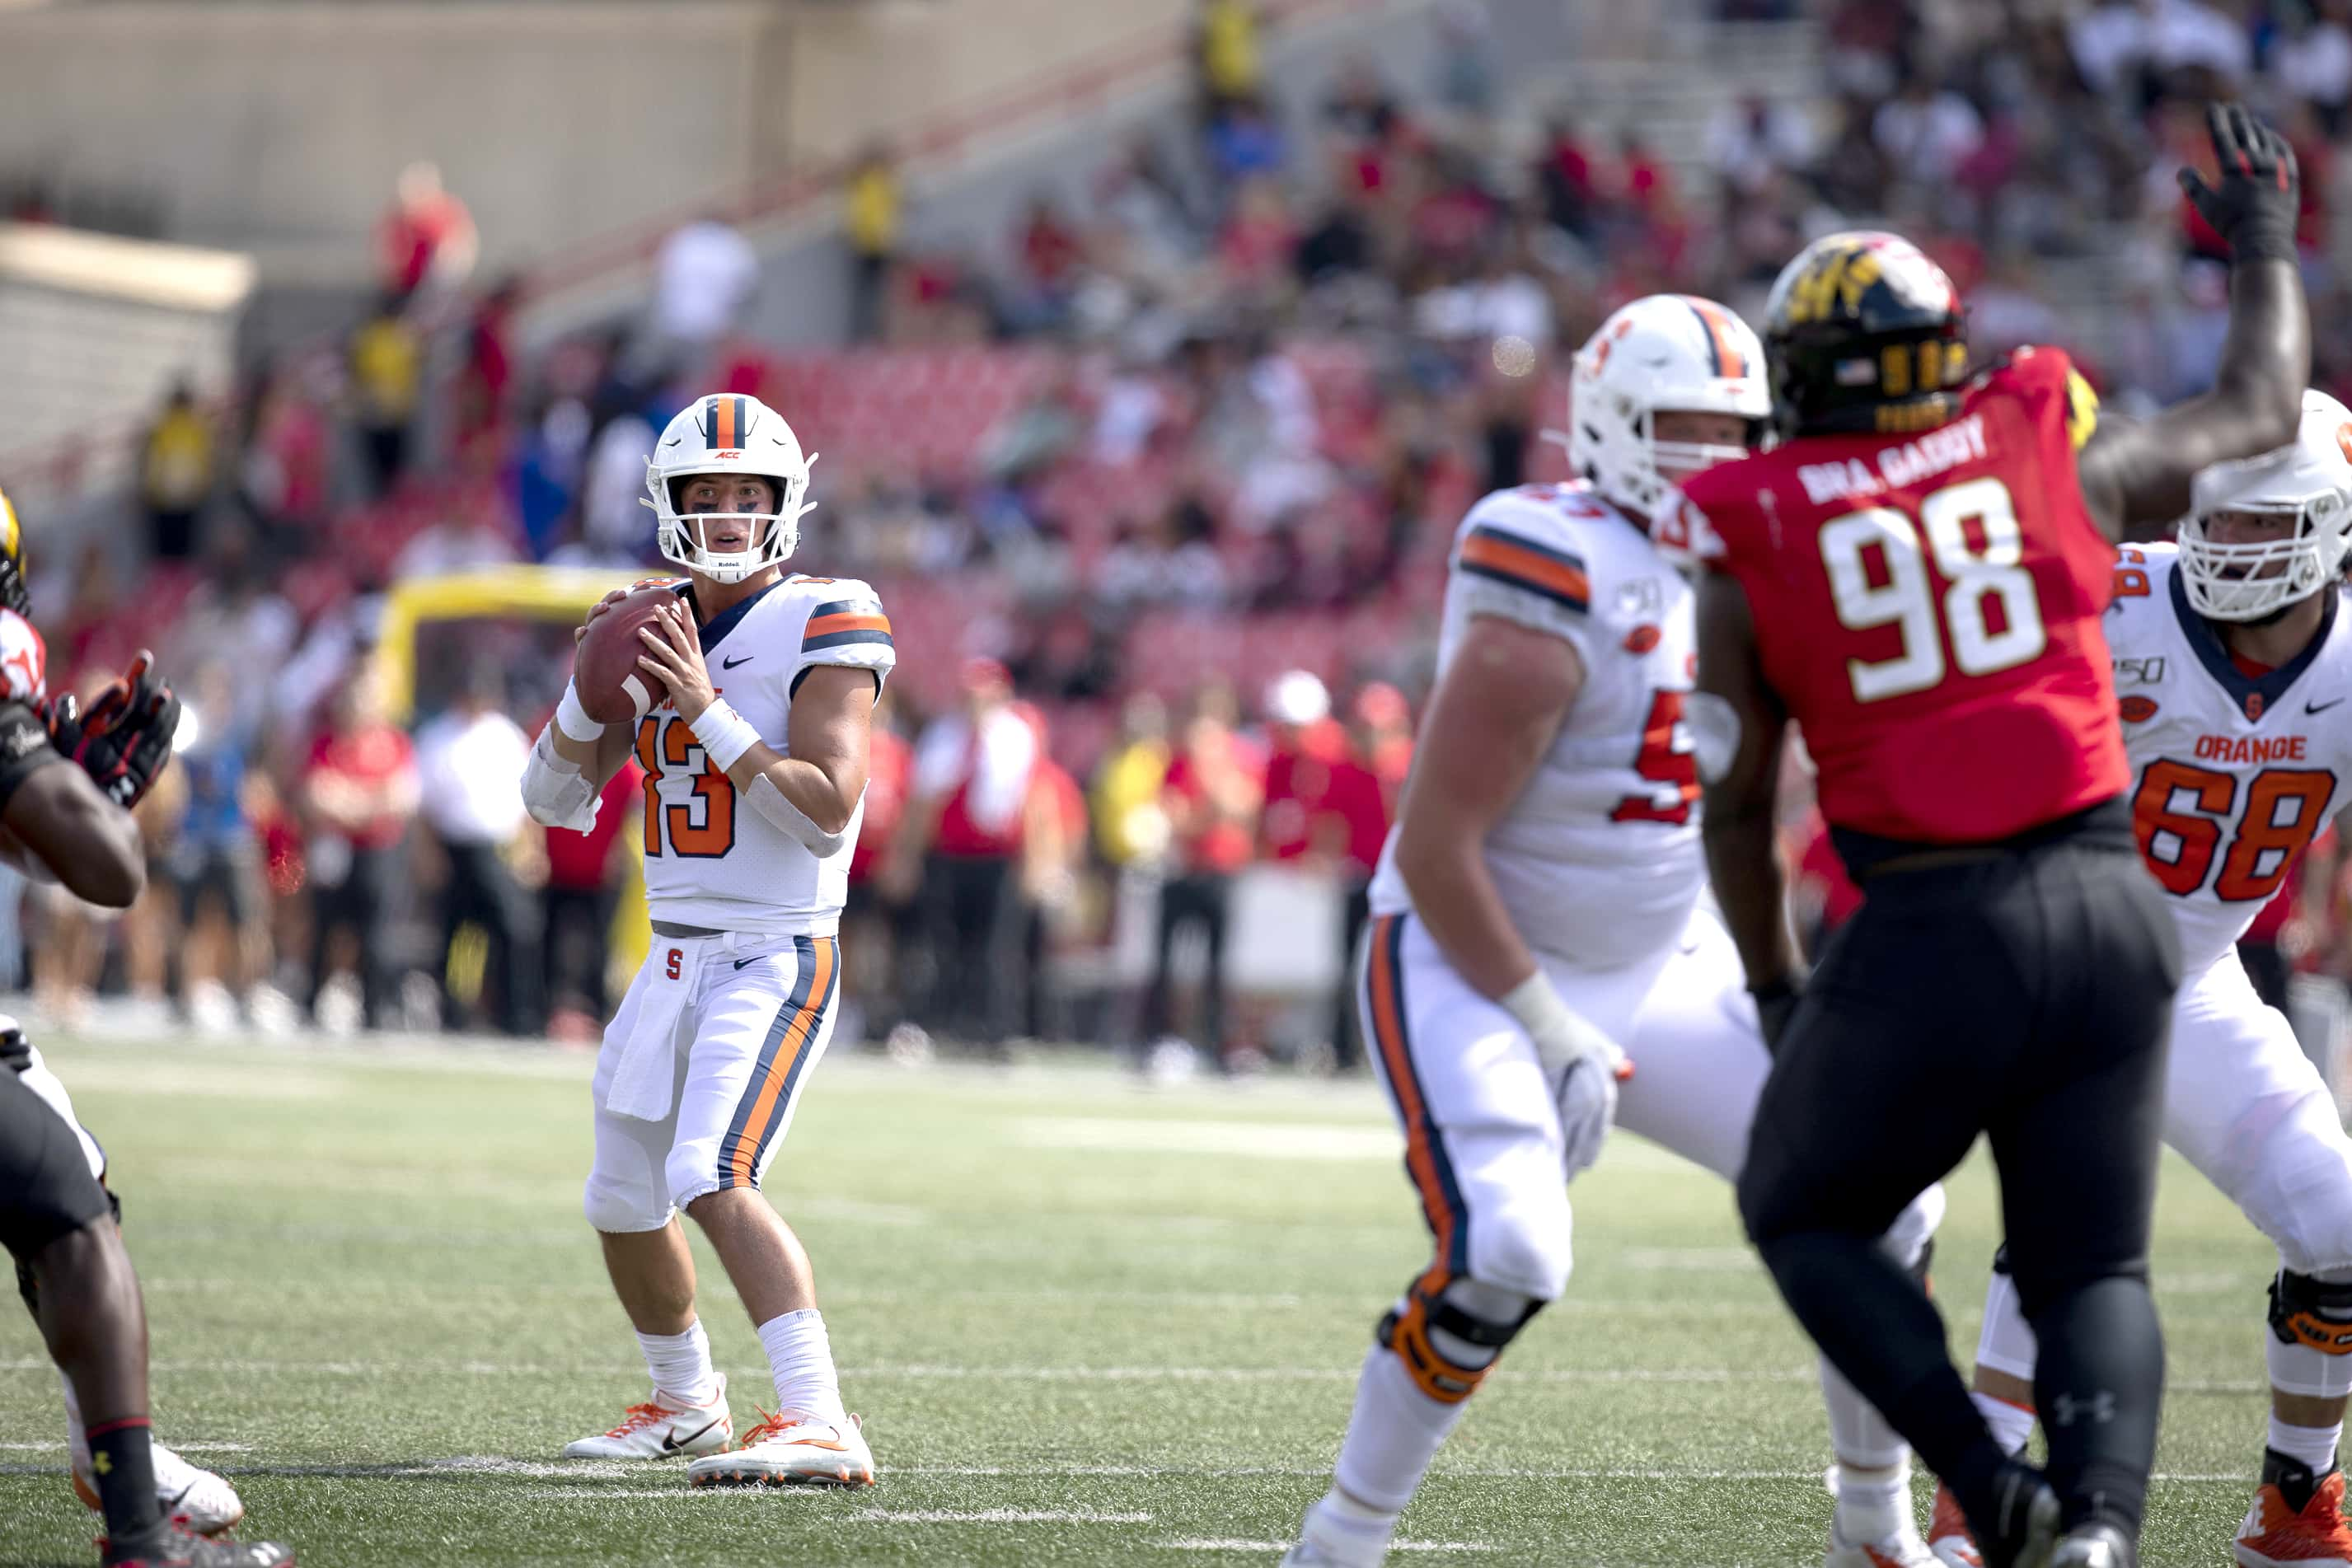 Tommy DeVito threw for 330 yards, 3 touchdowns and 1 interception vs. Maryland